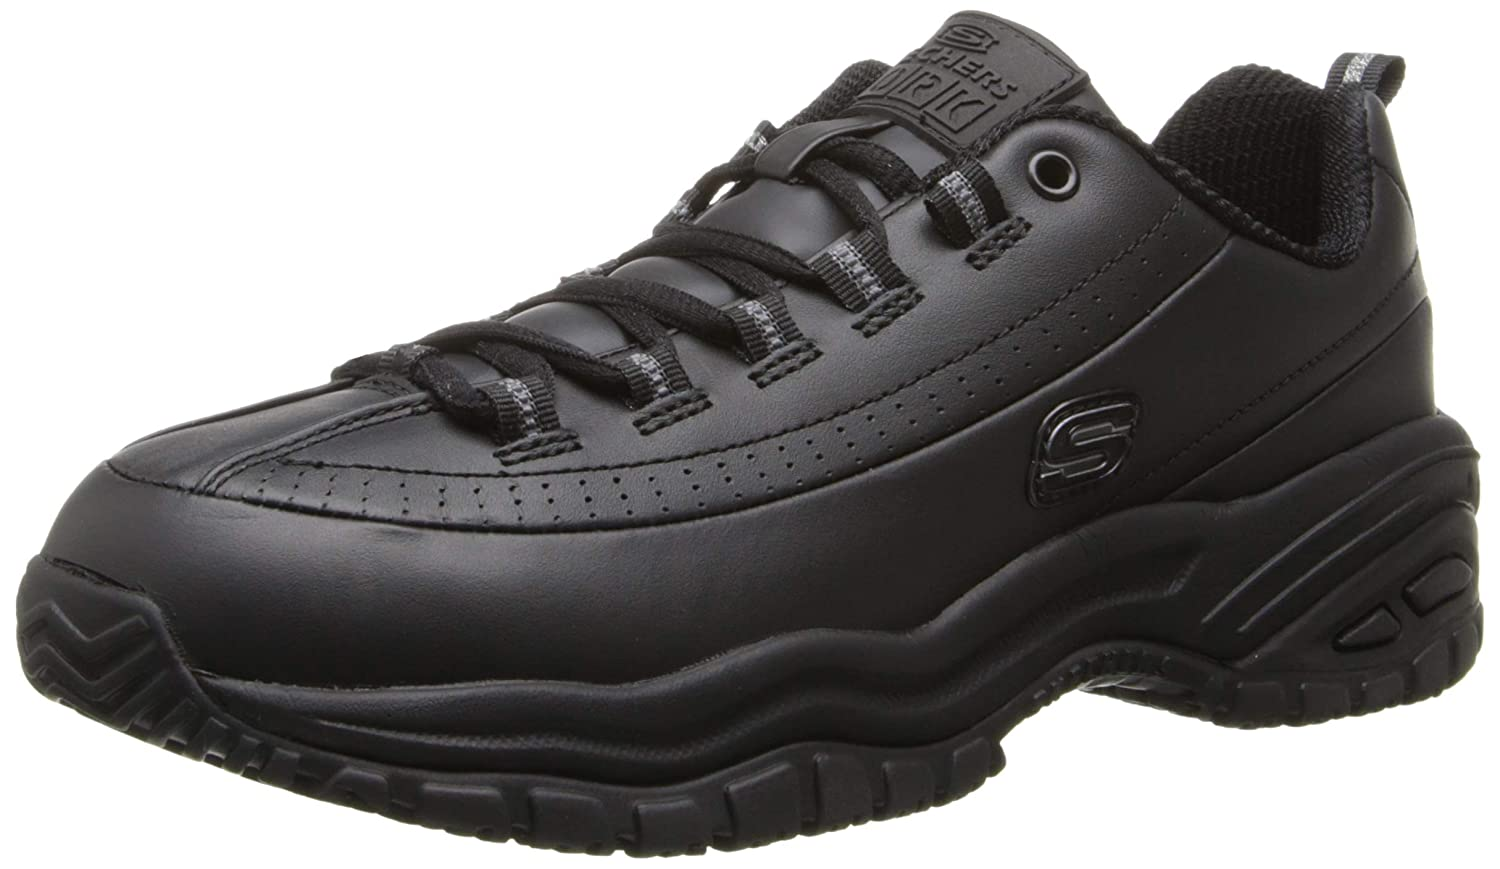 Skechers for work Women's Soft Stride-Softie Shoes